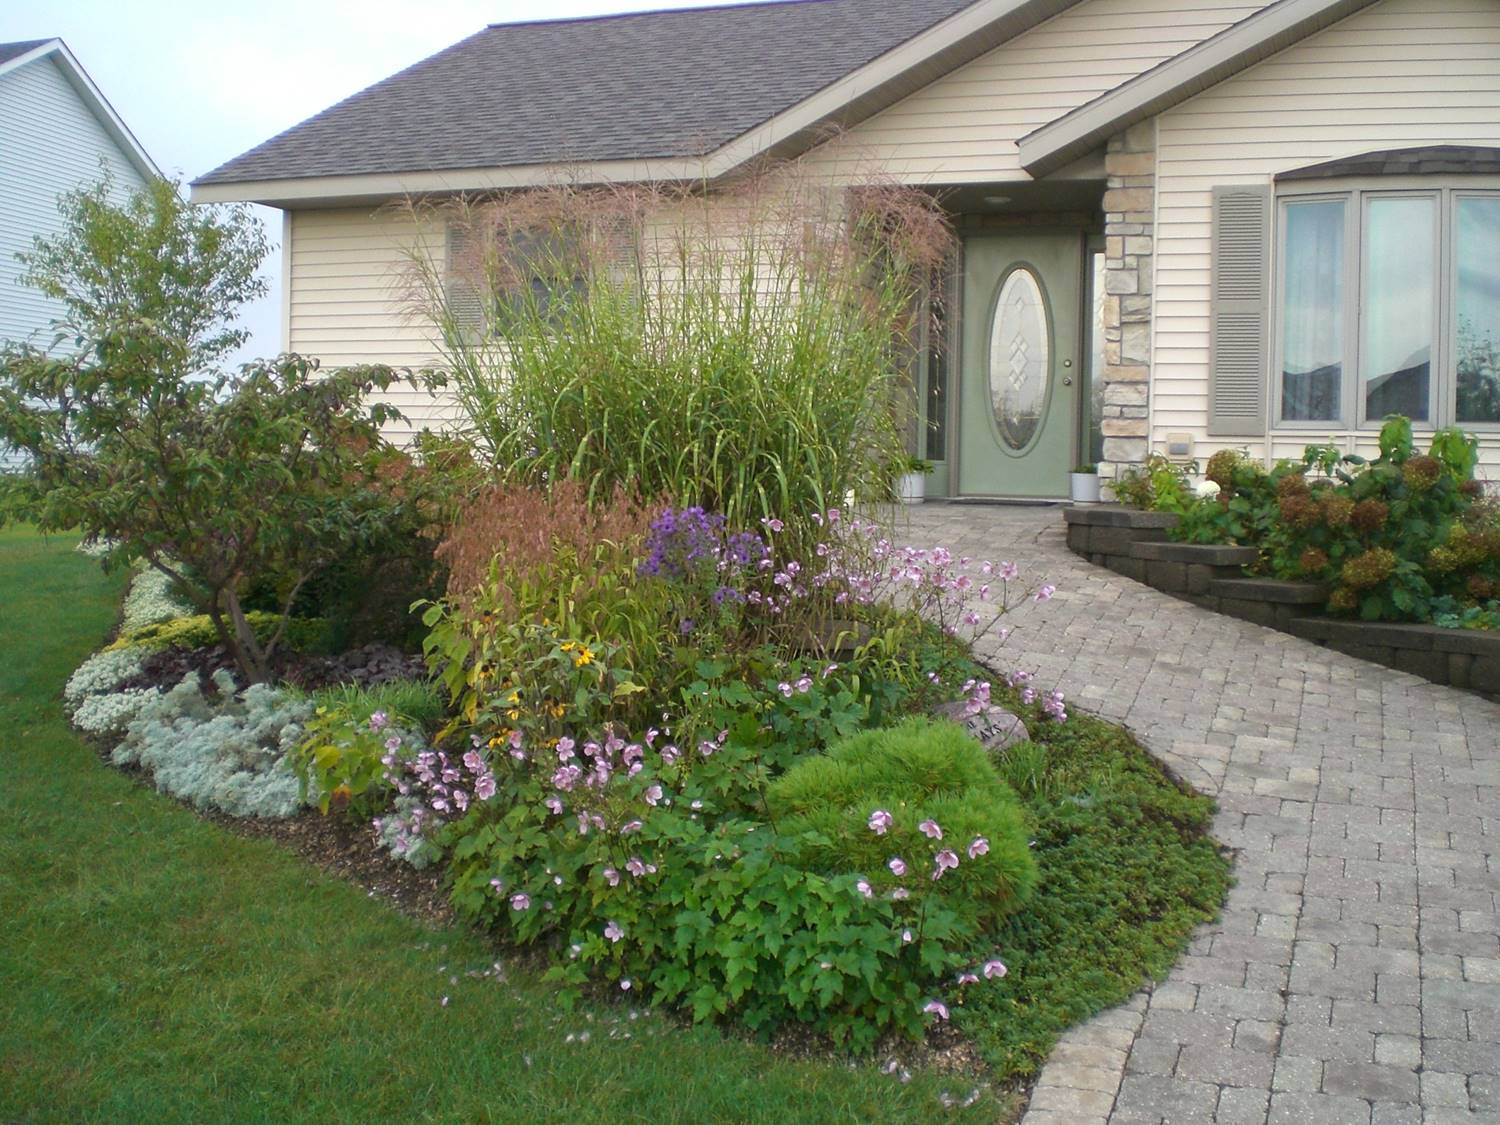 Landscaping With Native Plants : Nahant marsh education center landscaping with native plants